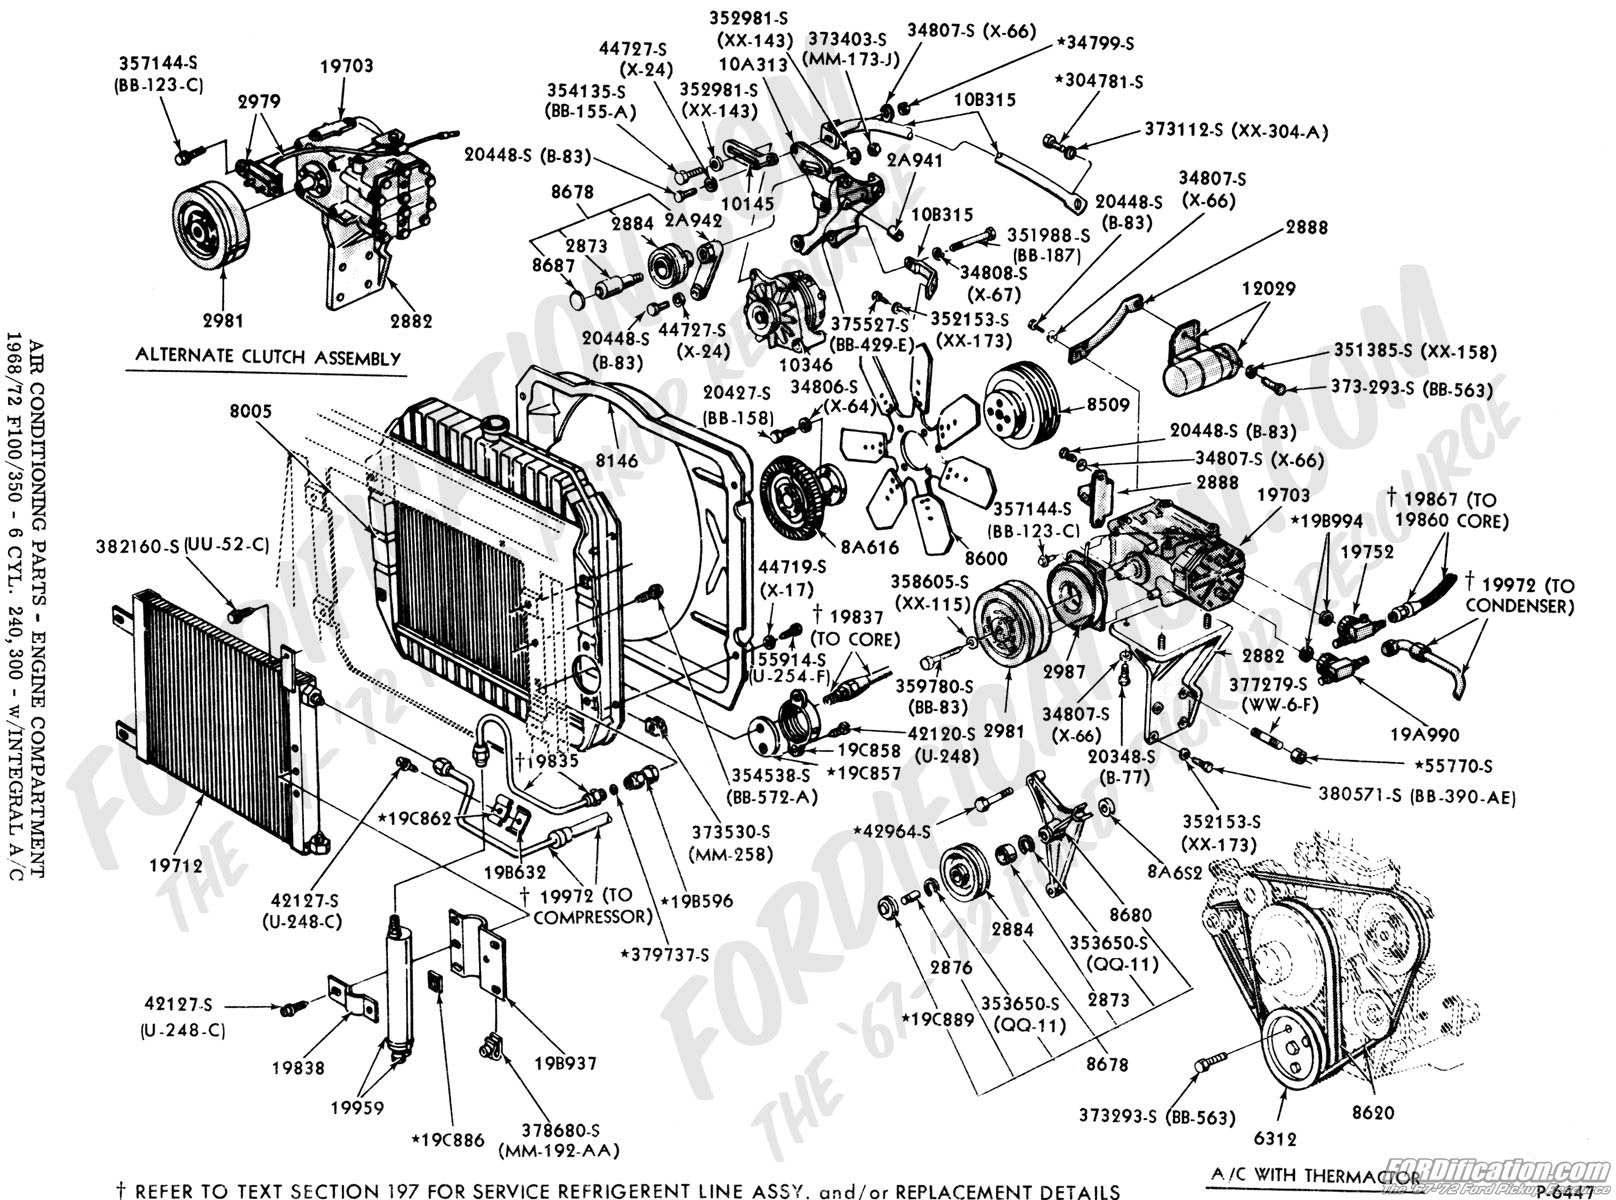 ac-engcomp-i6_integral  Dodge Engine Bay Diagram on engine belt diagrams, acura engine diagrams, dodge firing order, mitsubishi engine diagrams, bmw engine diagrams, studebaker engine diagrams, toyota engine diagrams, engine breakdown diagrams, gm engine diagrams, dodge intrepid 2.7 timing marks, chevy engine diagrams, dodge starter diagram, kia engine diagrams, gmc engine diagrams, mopar engine diagrams, lamborghini engine diagrams, volvo engine diagrams, diesel engine diagrams, paccar engine diagrams, chrysler engine diagrams,